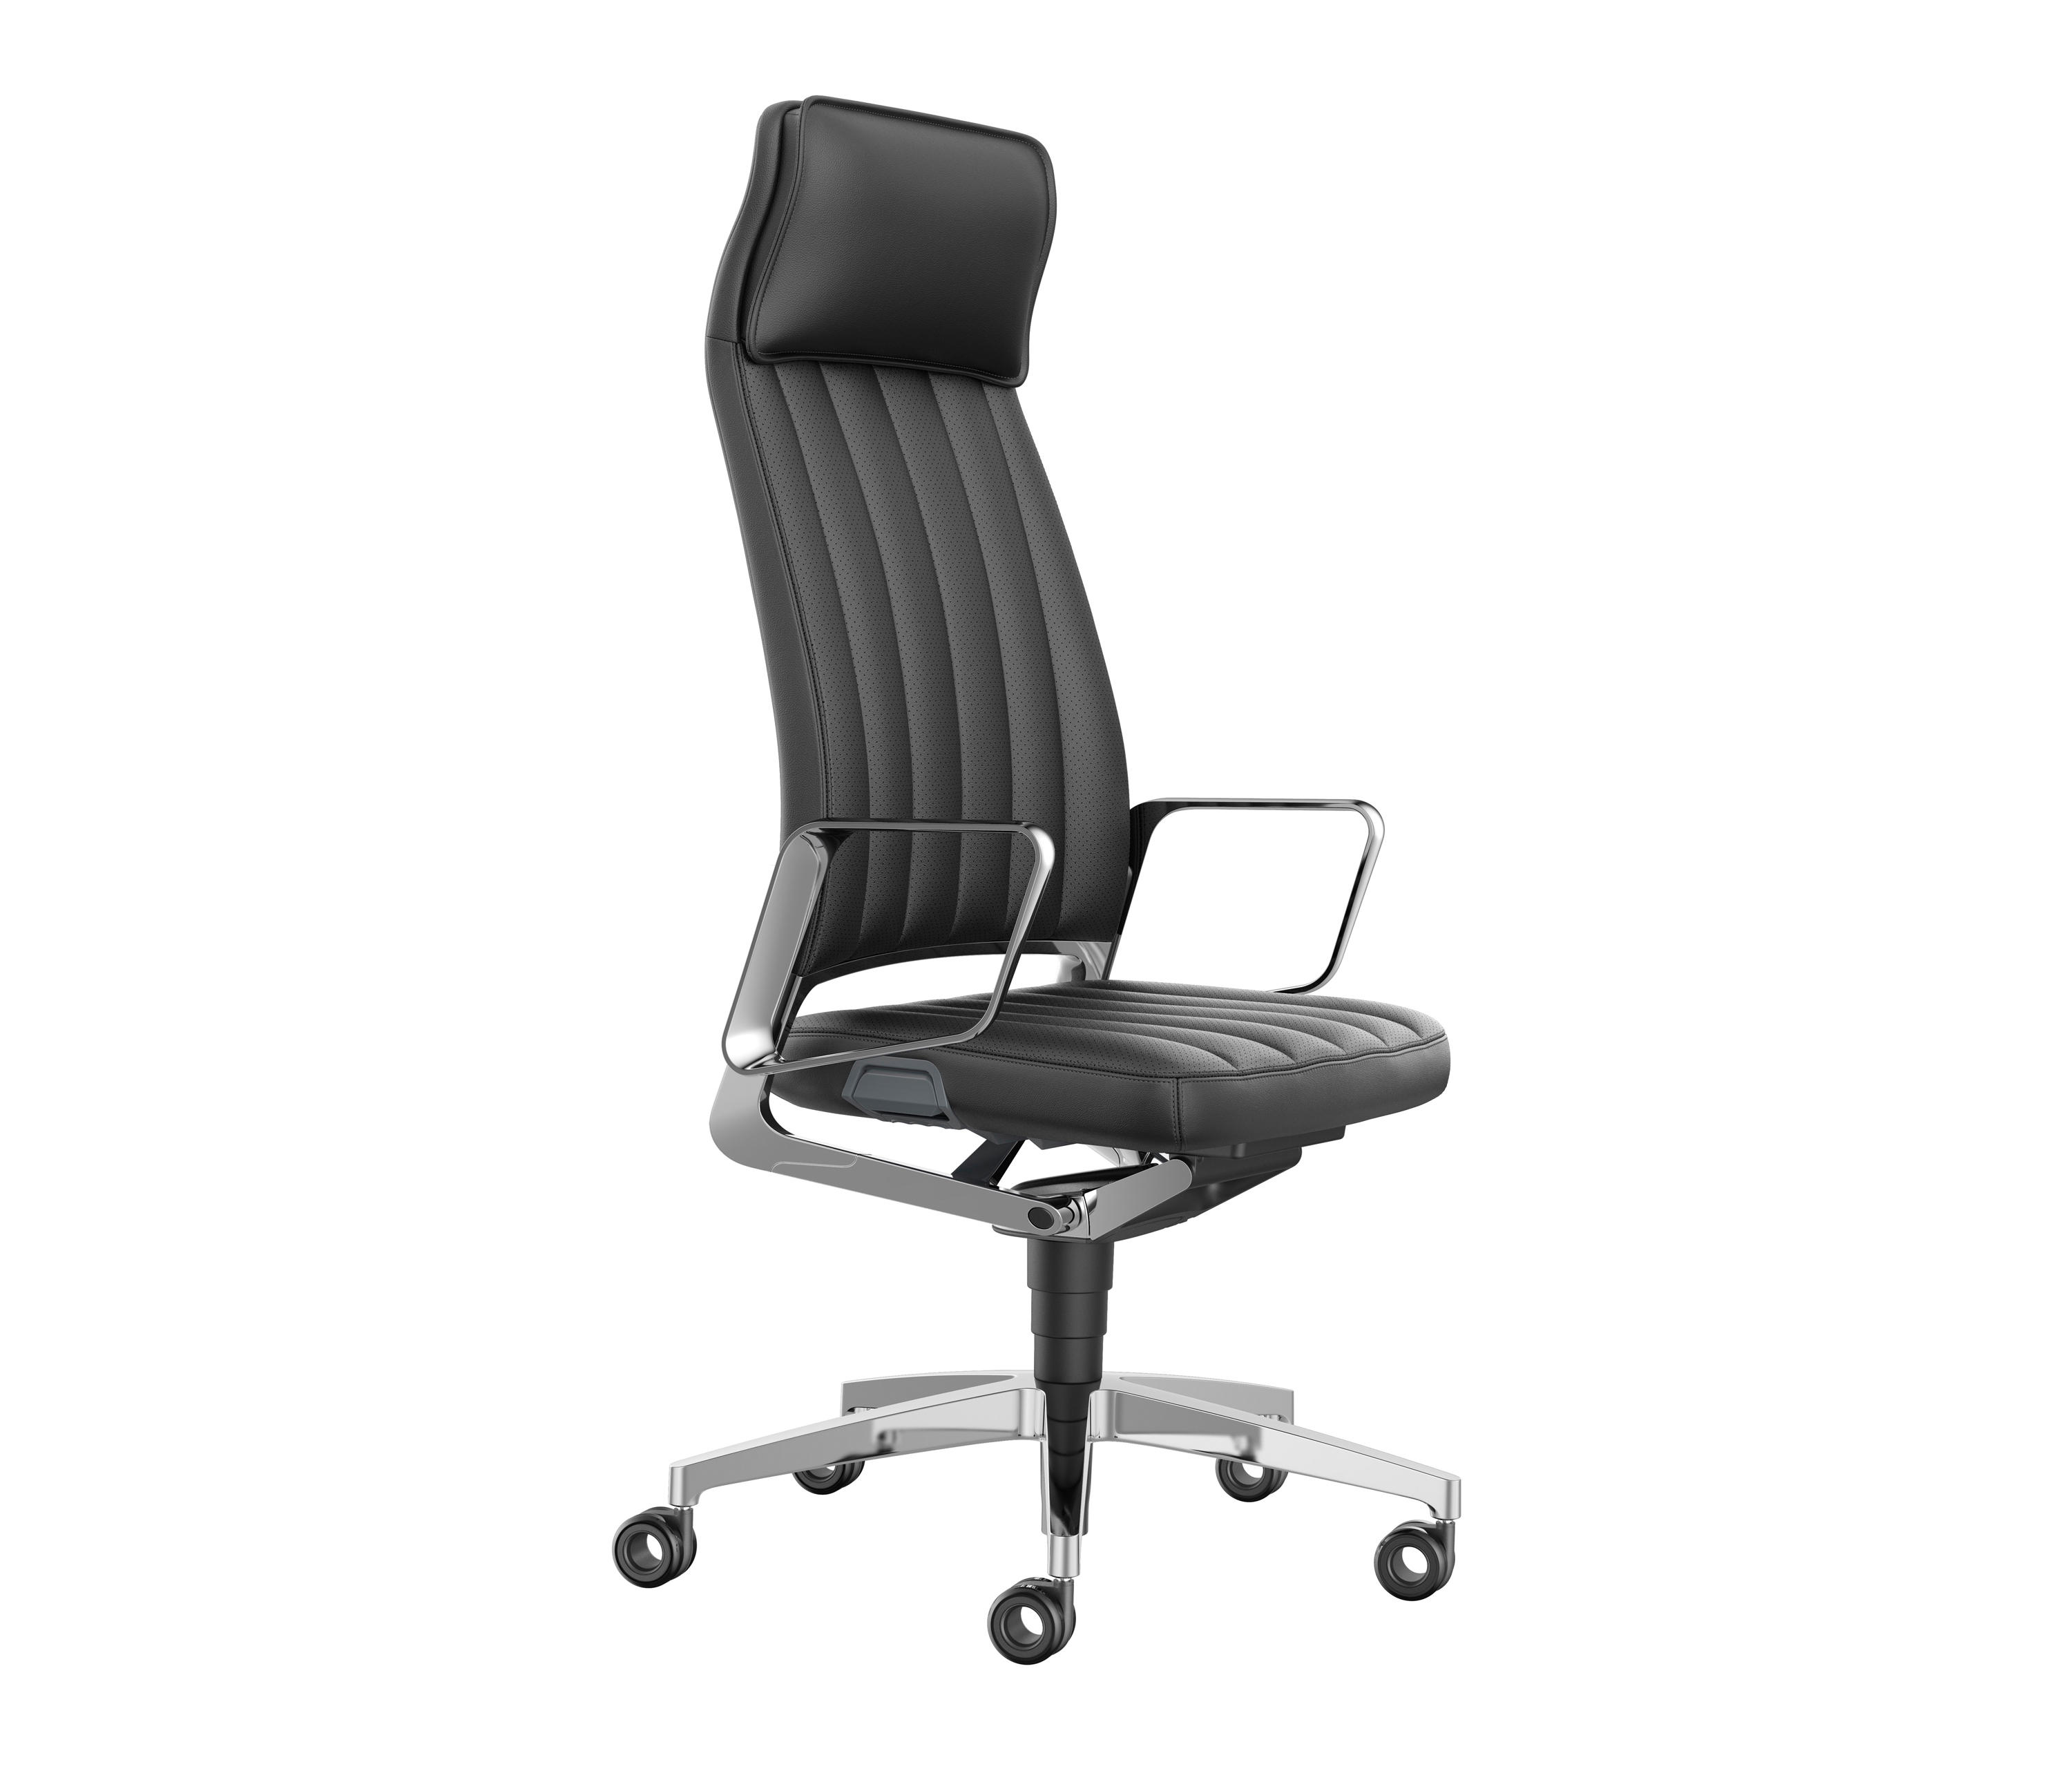 Vintageis5 32v4 management chairs from interstuhl for Buero moebel